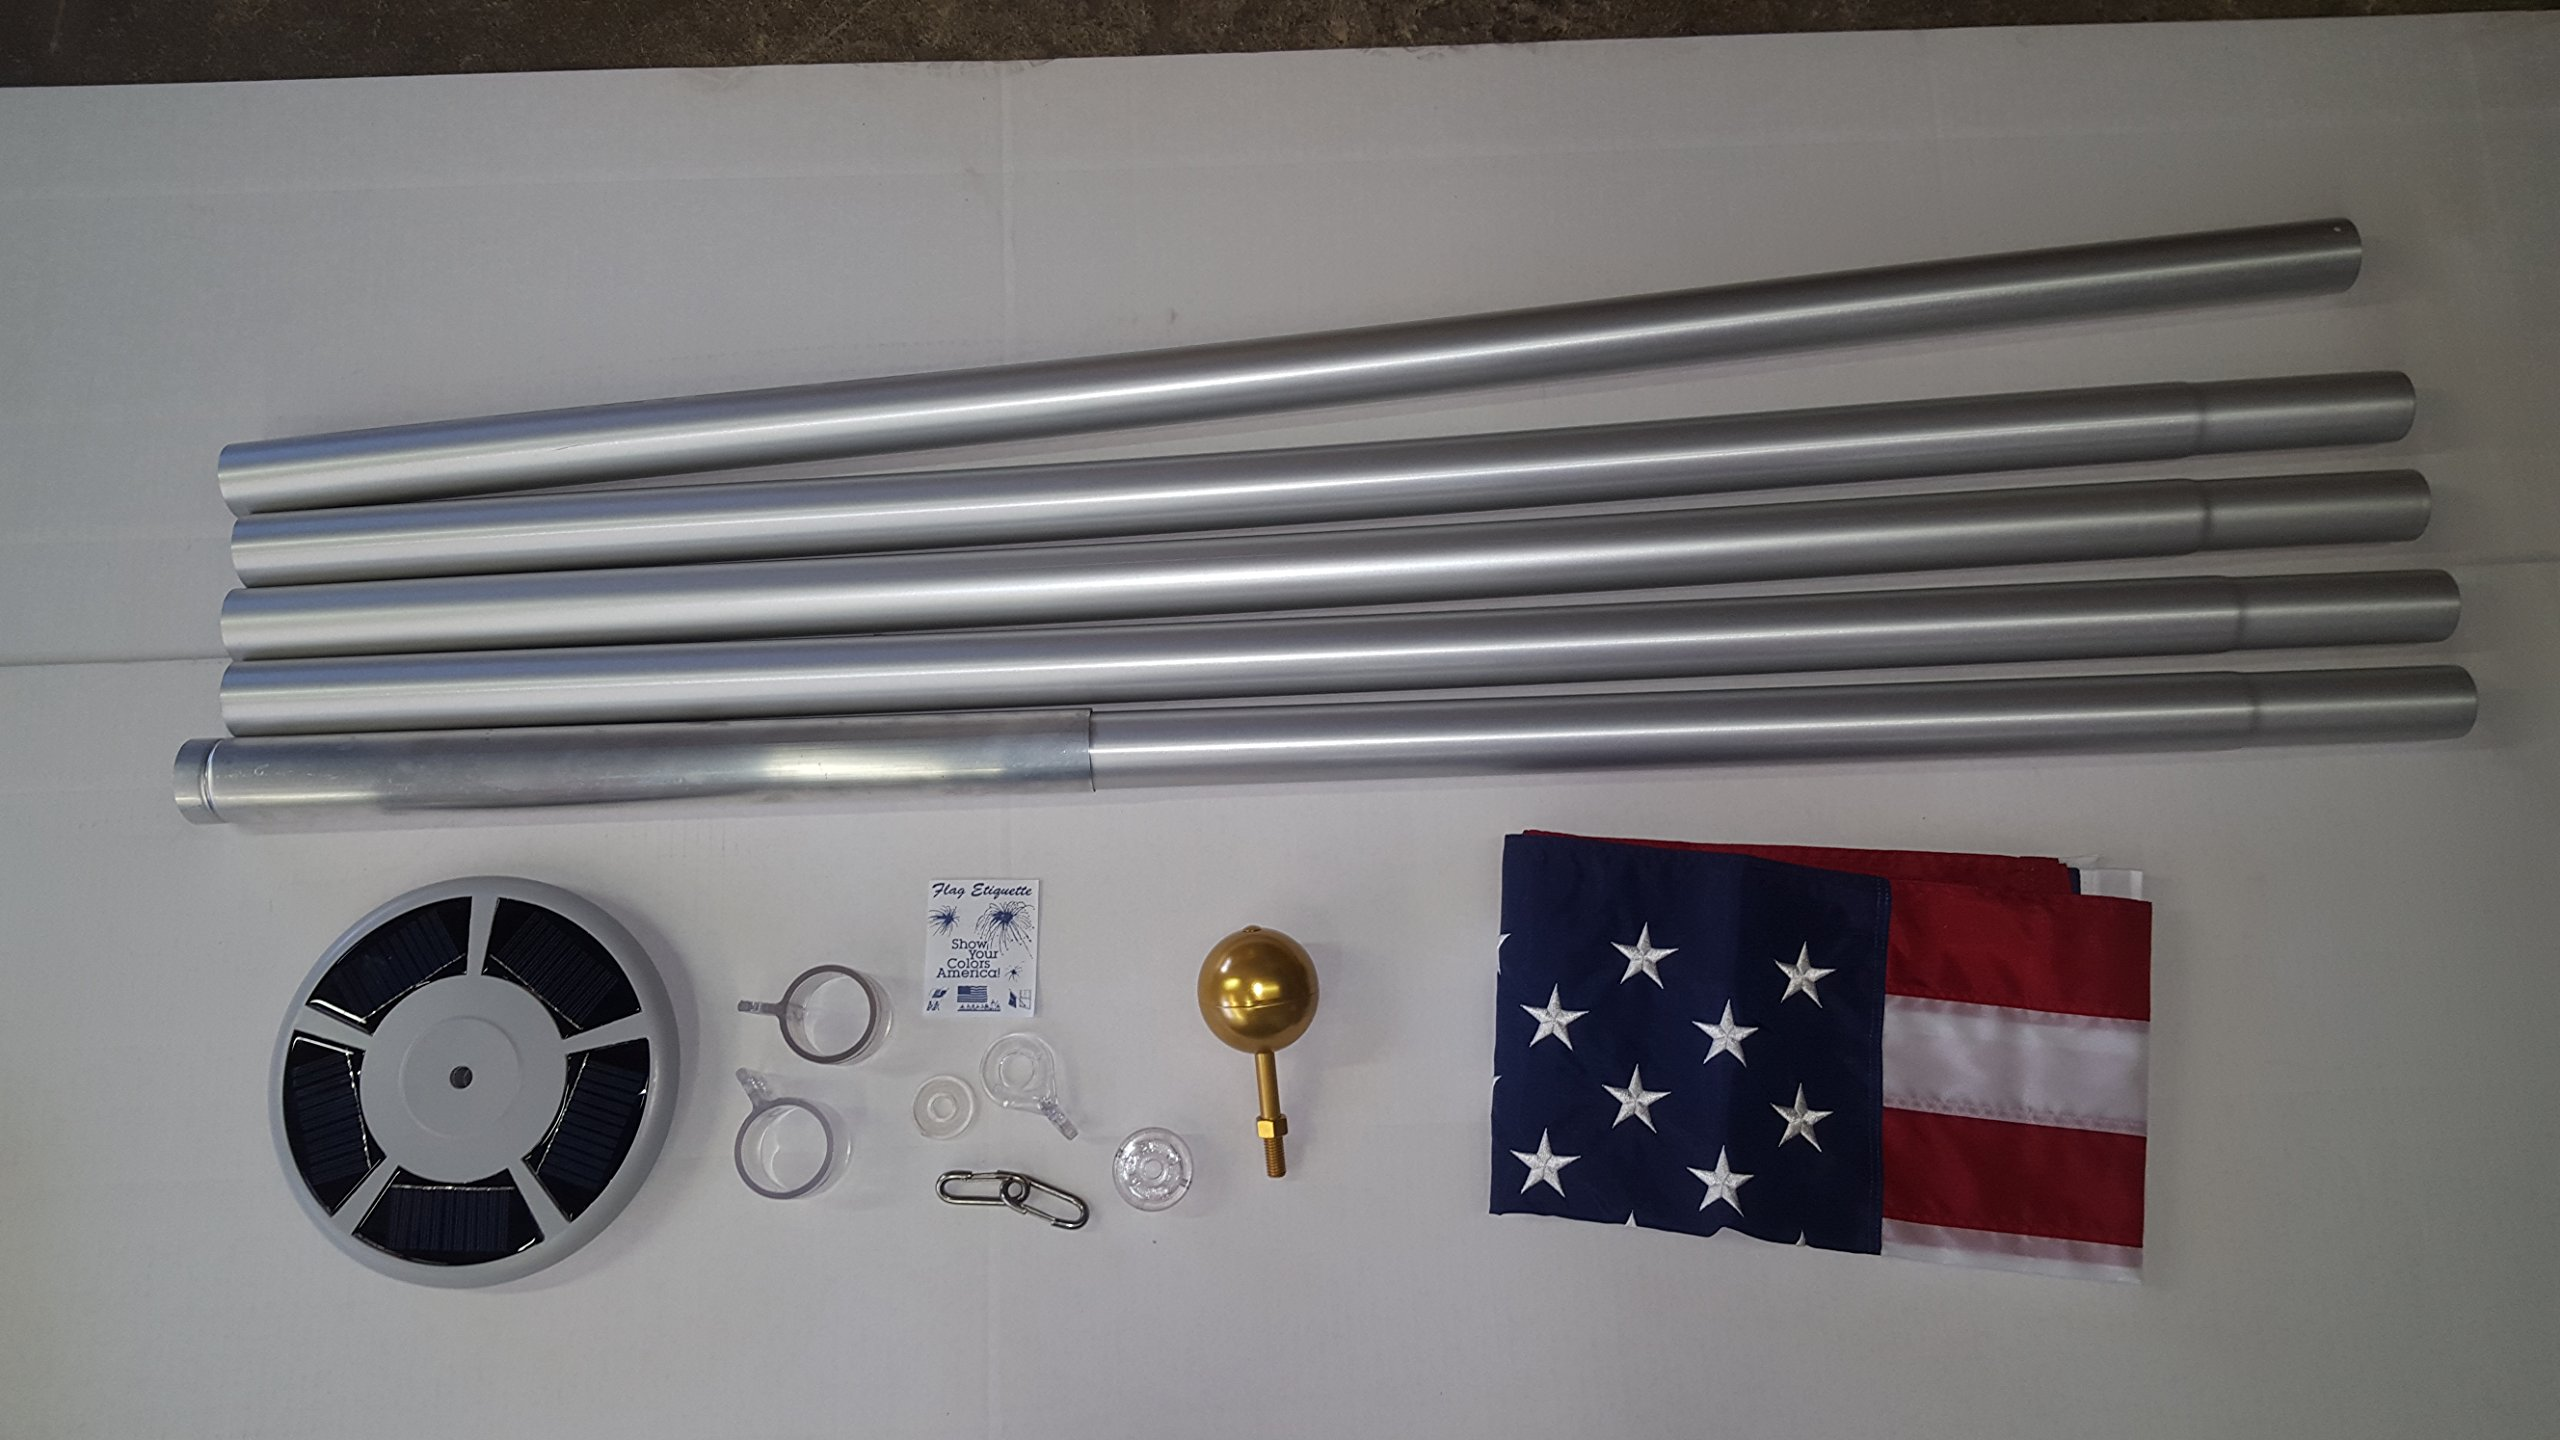 25 Ft Deluxe Silver Tangle Free Residential Flagpole Windstrong® Includes Commercial (100 LUX Solar Flagpole Light) 4x6 Ft Valley Forge US American Flag Made in the USA Warranty